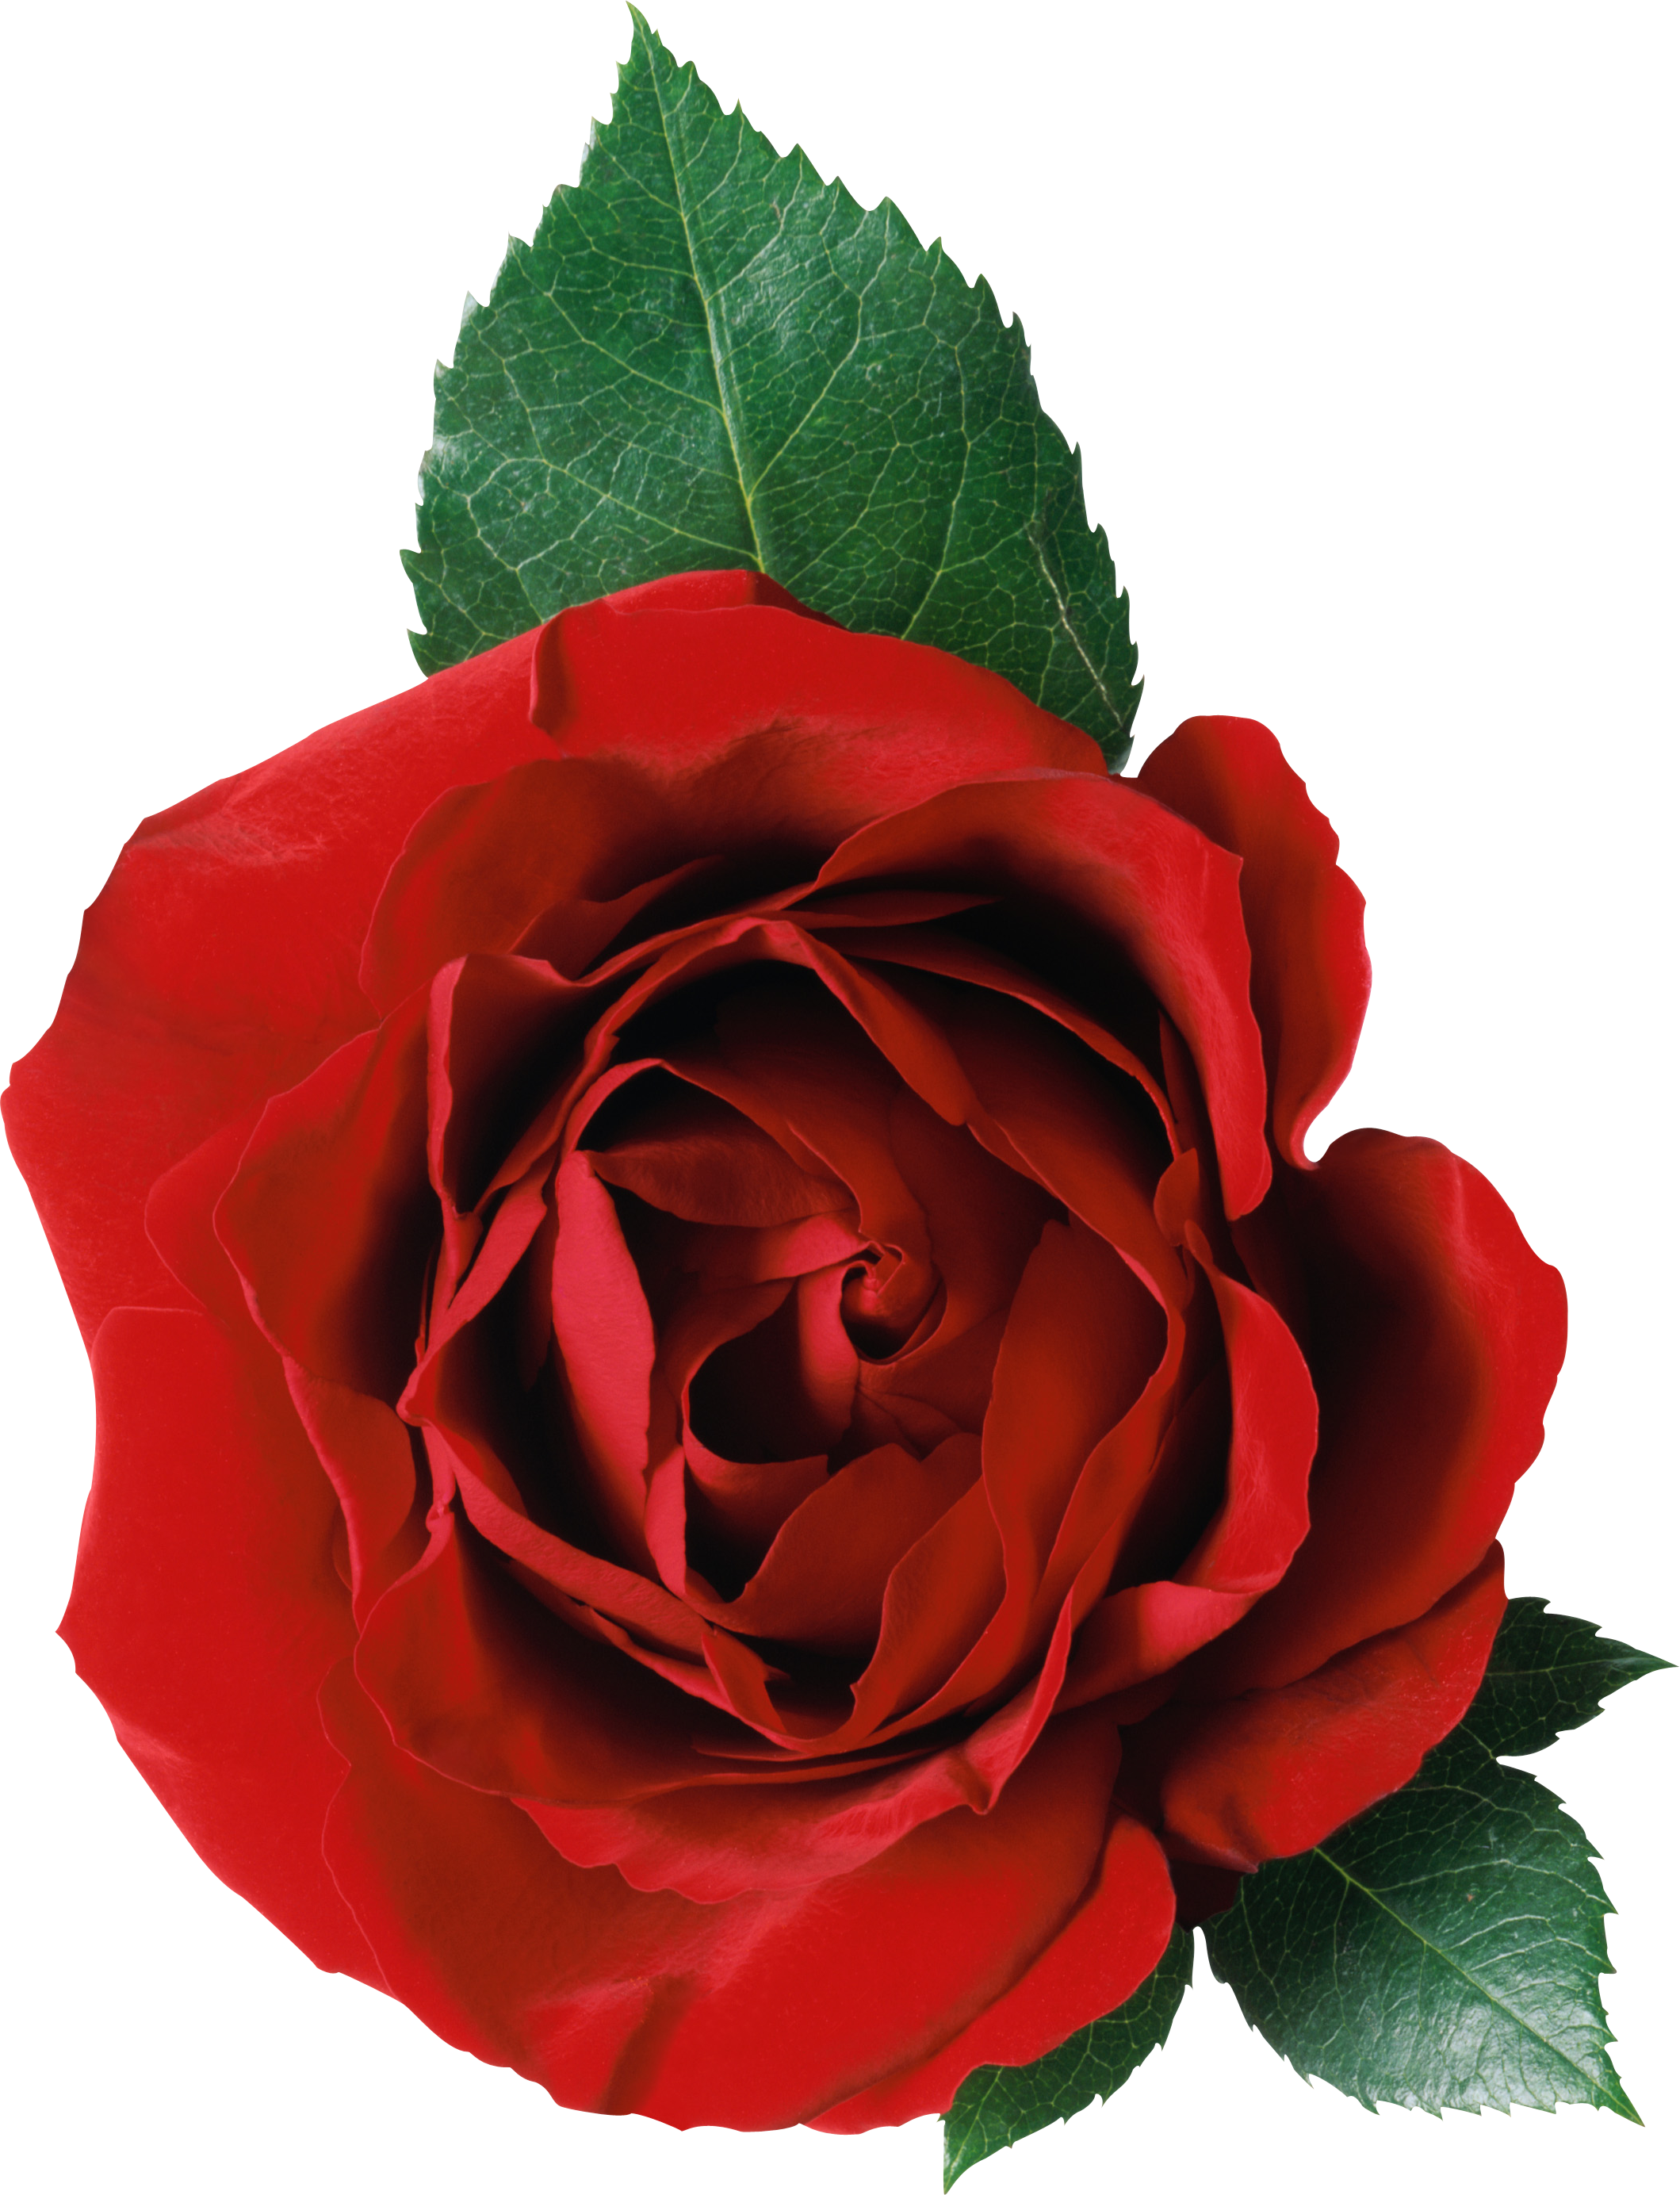 Rose Png Image Free Picture Download Red Rose Png Red Roses Red Flowers